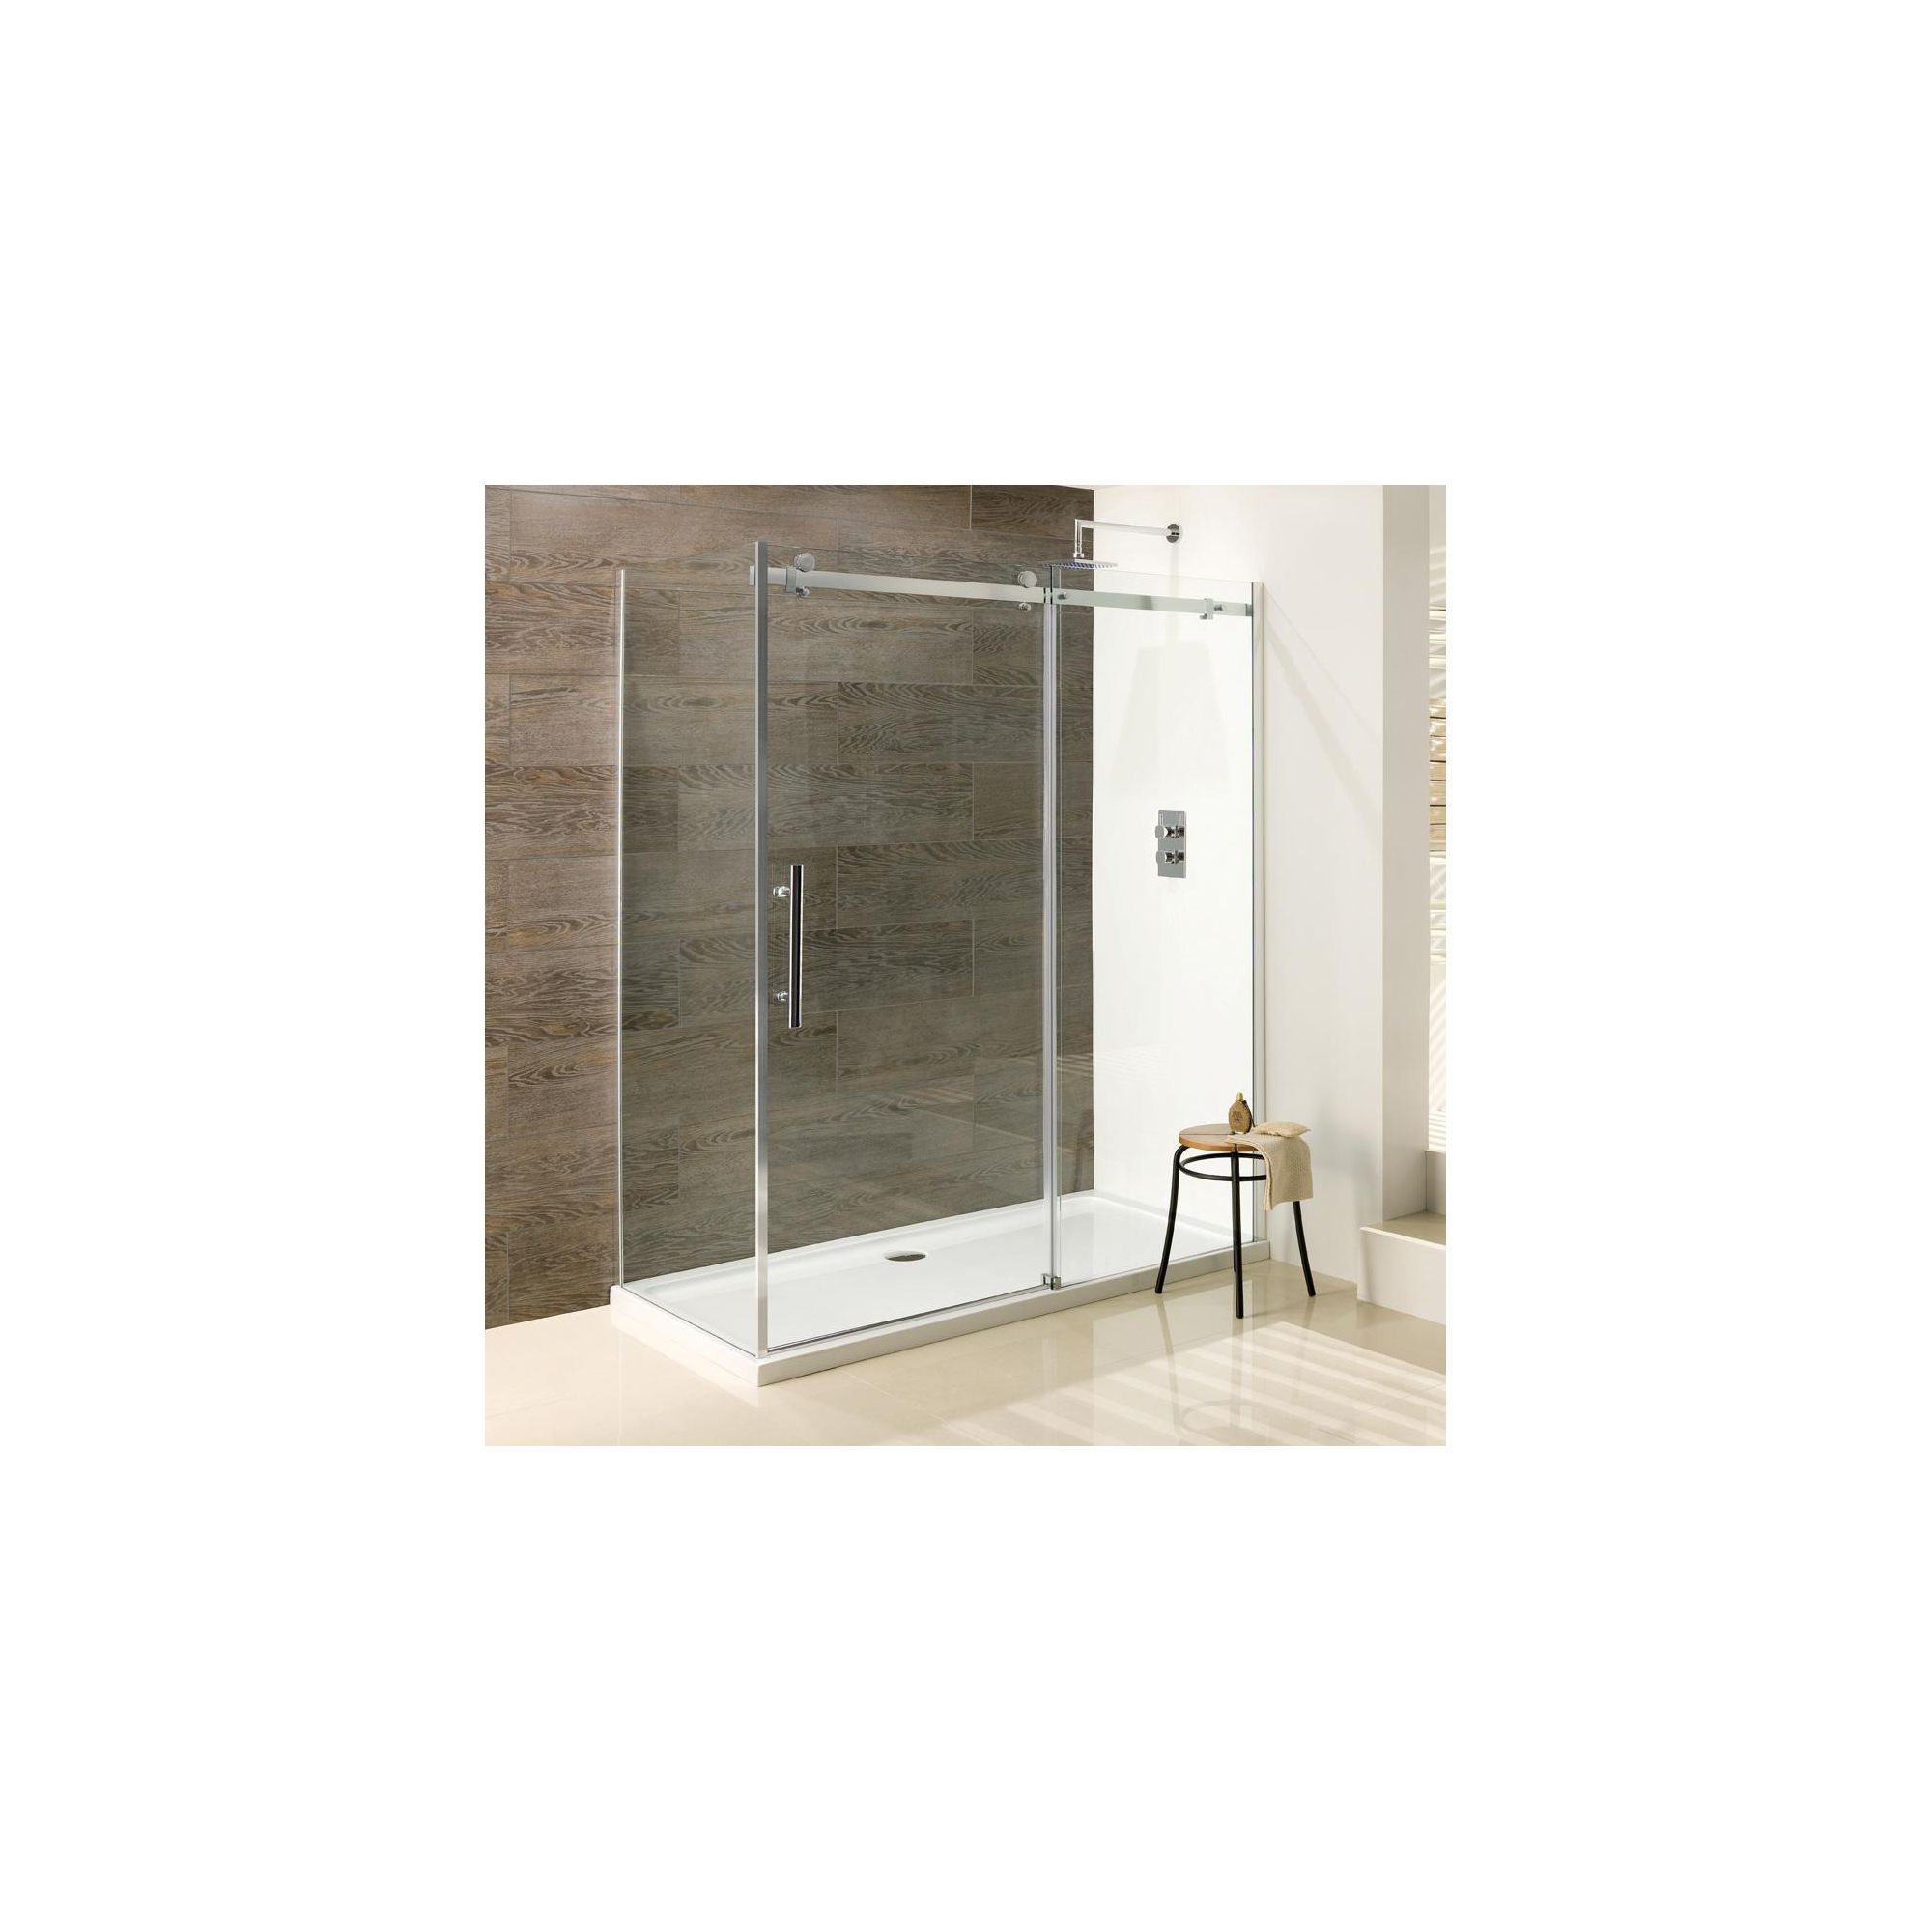 Duchy Deluxe Silver Sliding Door Shower Enclosure with Side Panel 1200mm x 900mm (Complete with Tray), 10mm Glass at Tesco Direct